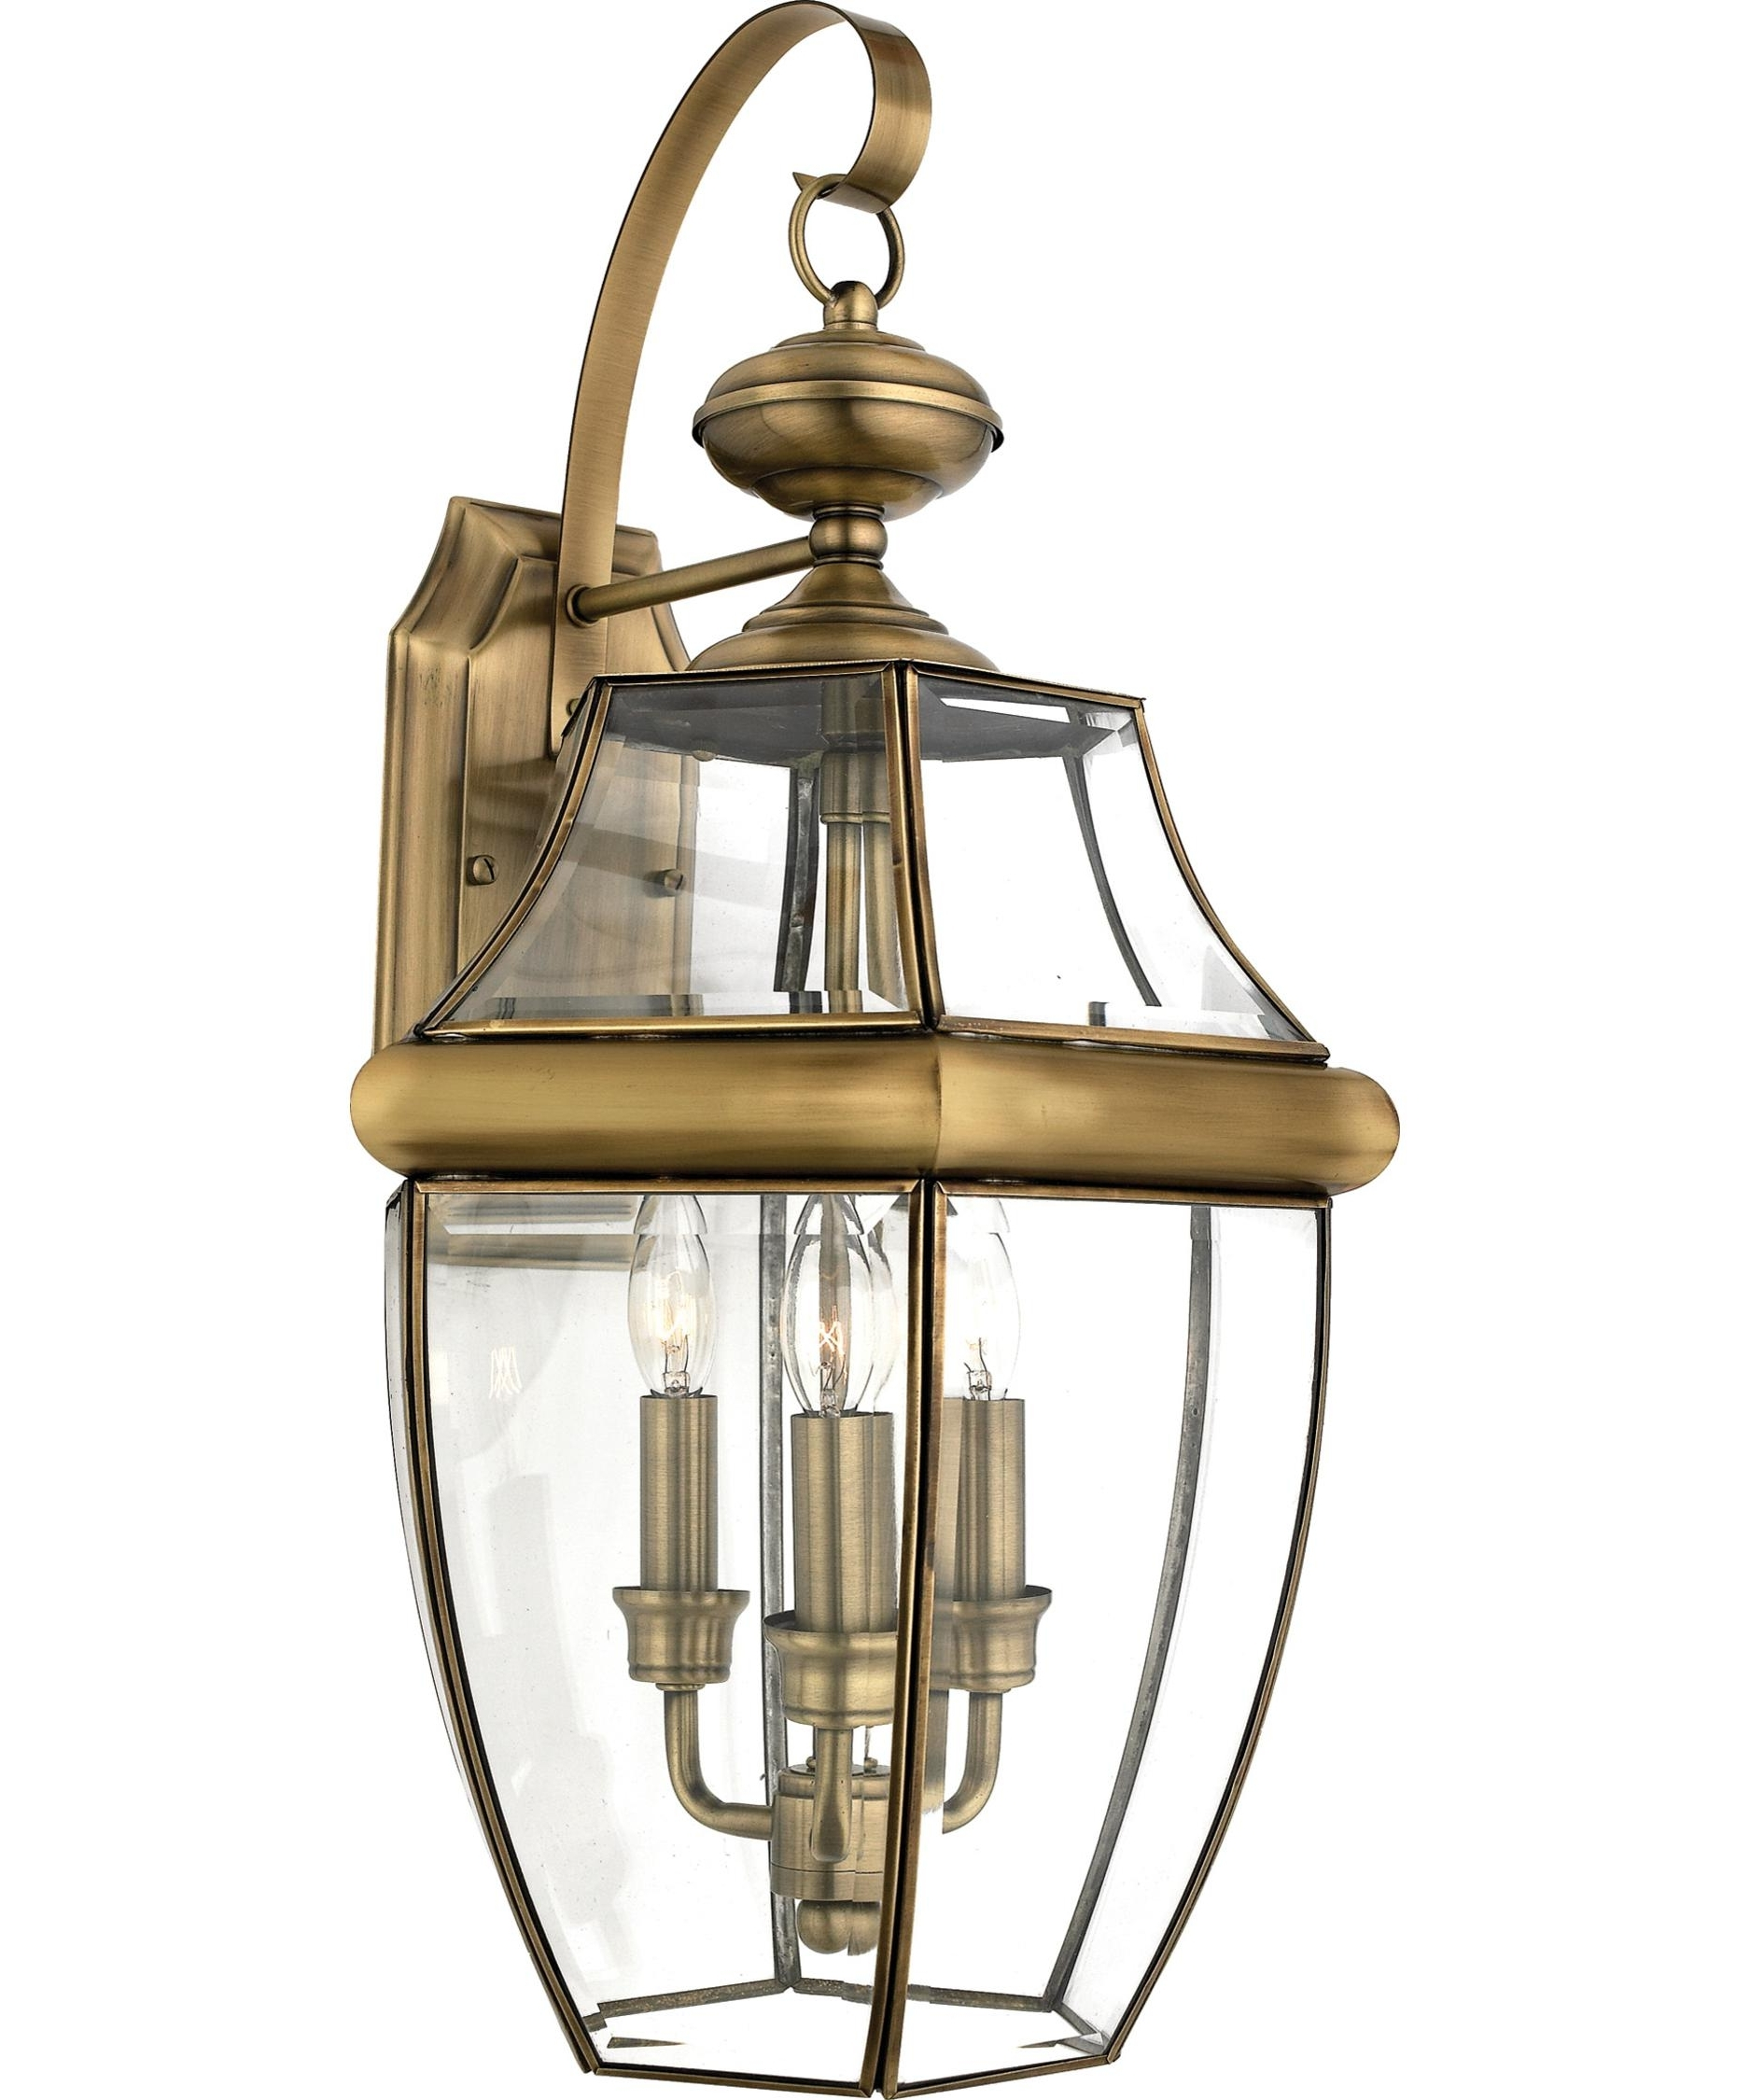 Preferred Brass Outdoor Wall Lighting In Quoizel Ny8318 Newbury 13 Inch Wide 3 Light Outdoor Wall Light (View 16 of 20)